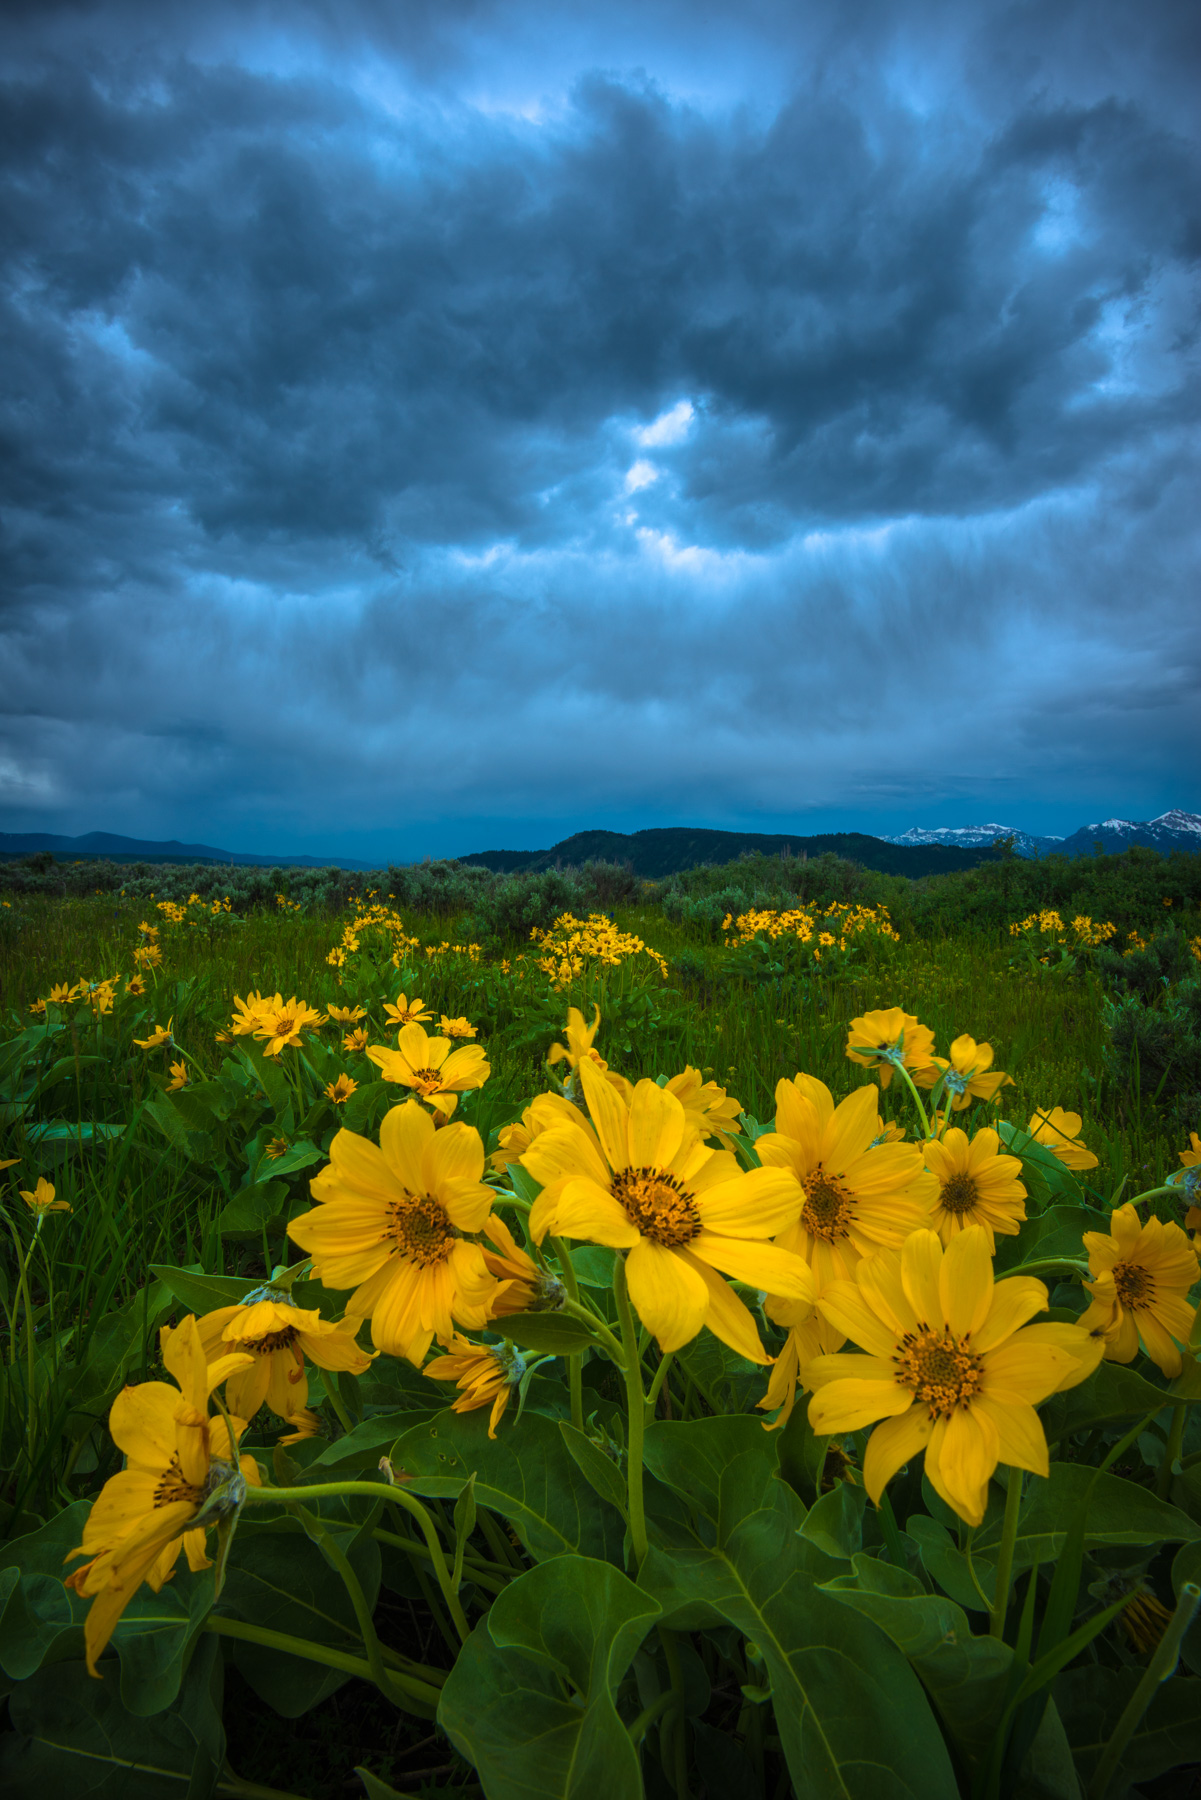 Balsomroot and an epic afternoon thunderstorm over Antelope Flats, Grand Teton National Park, Wyoming. Available Print Sizes:...